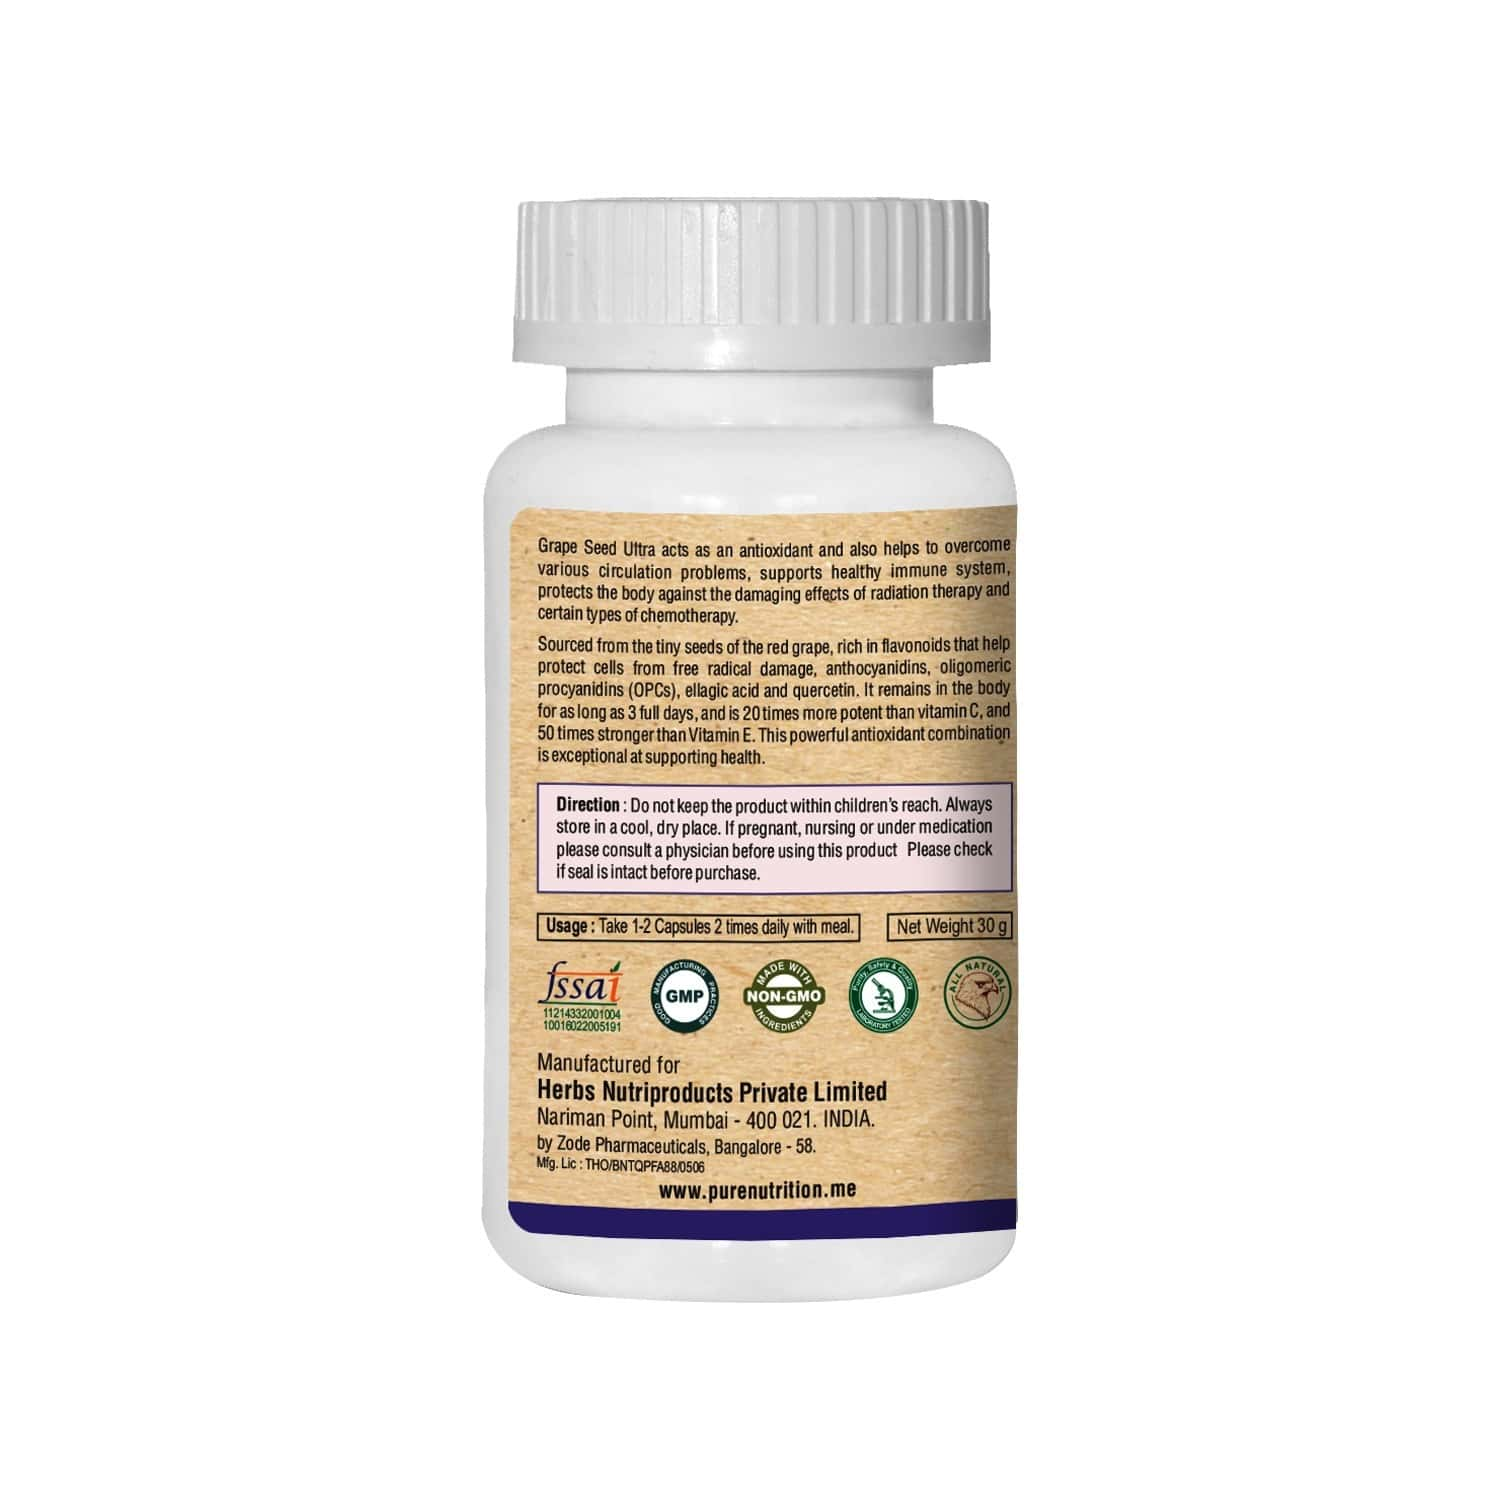 Pure Nutrition Grape Seed Ultra (rich In Quercetin & Opc) - 60 Caps